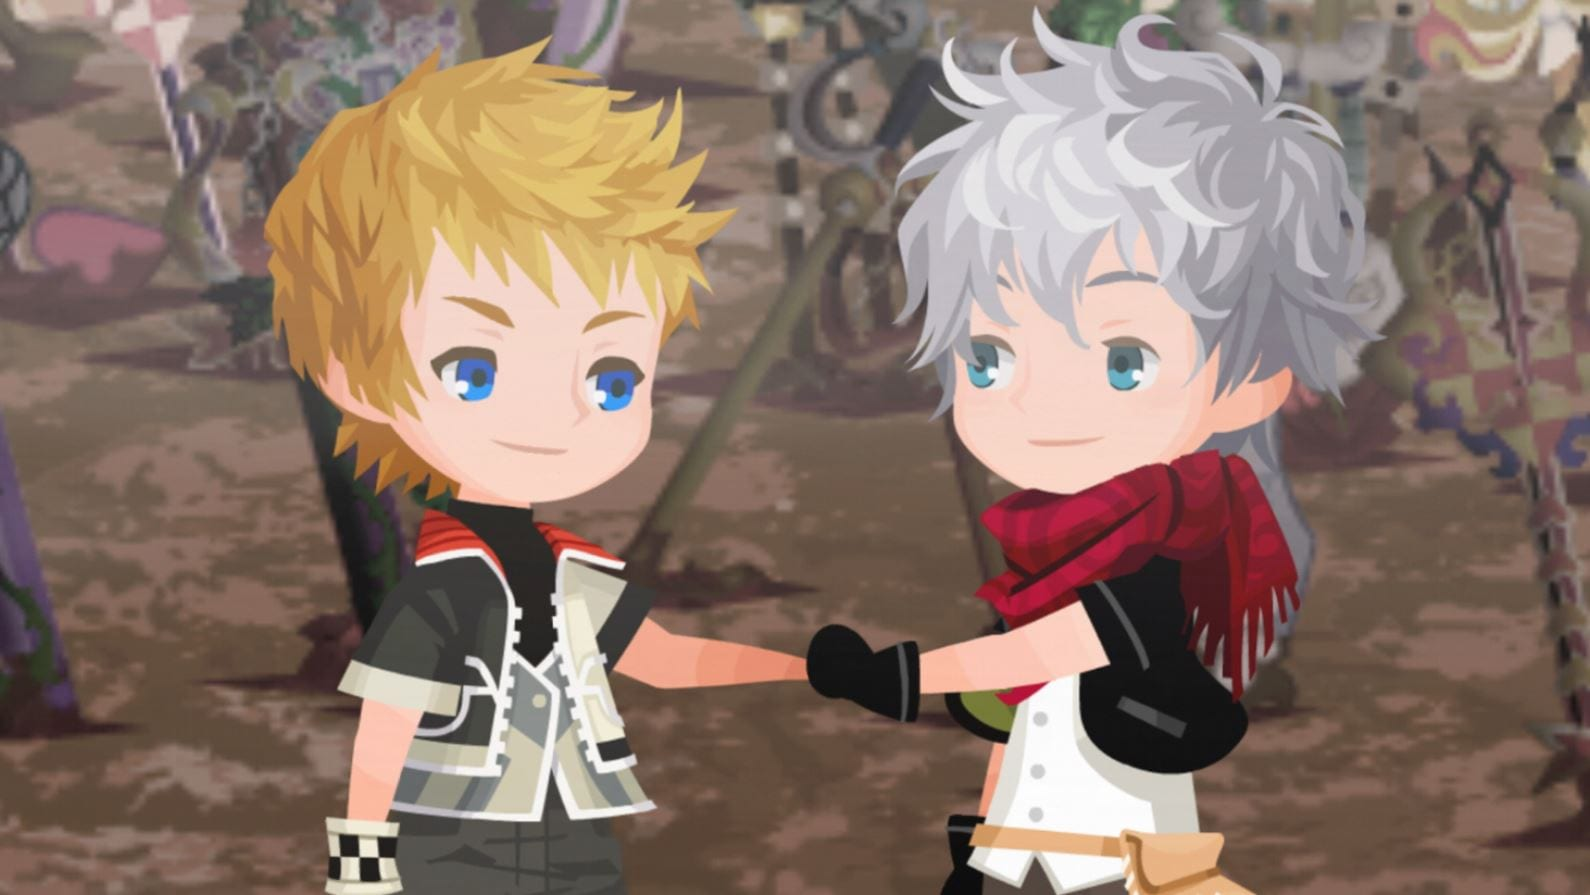 Kingdom Hearts Union X Ending Explained: Who is Brain and How is he Connected to Luxu?